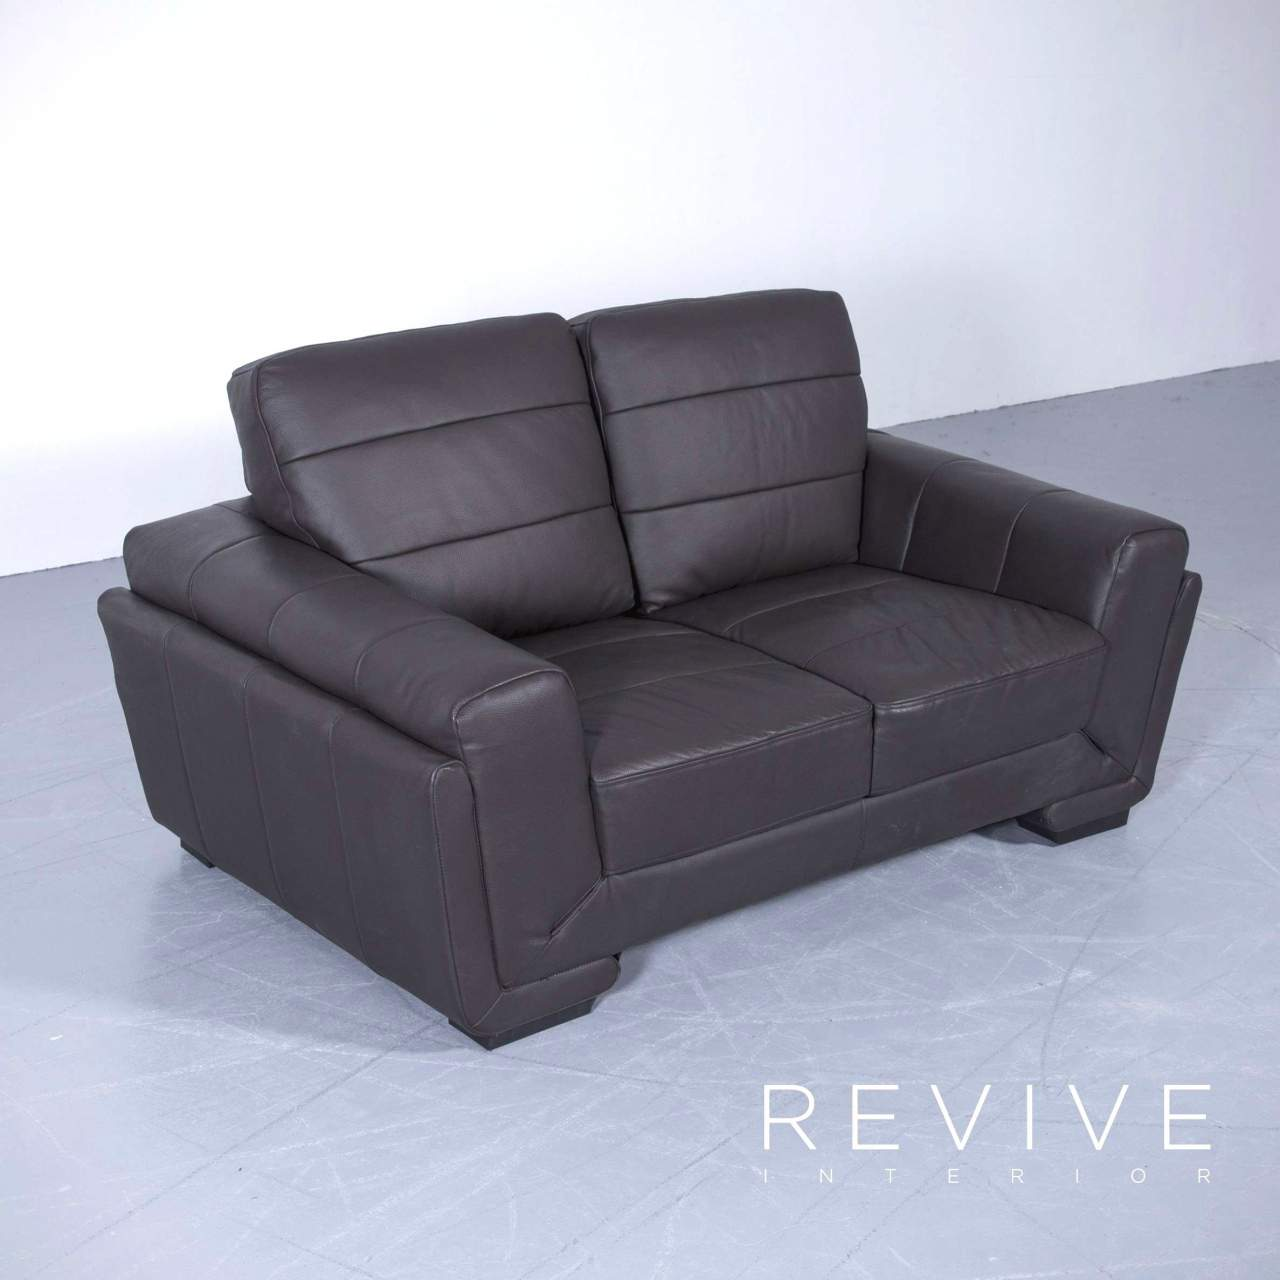 sofa bed couch sofa bauen inspirierend sofa design best graue couch 0d archives durch sofa bed couch